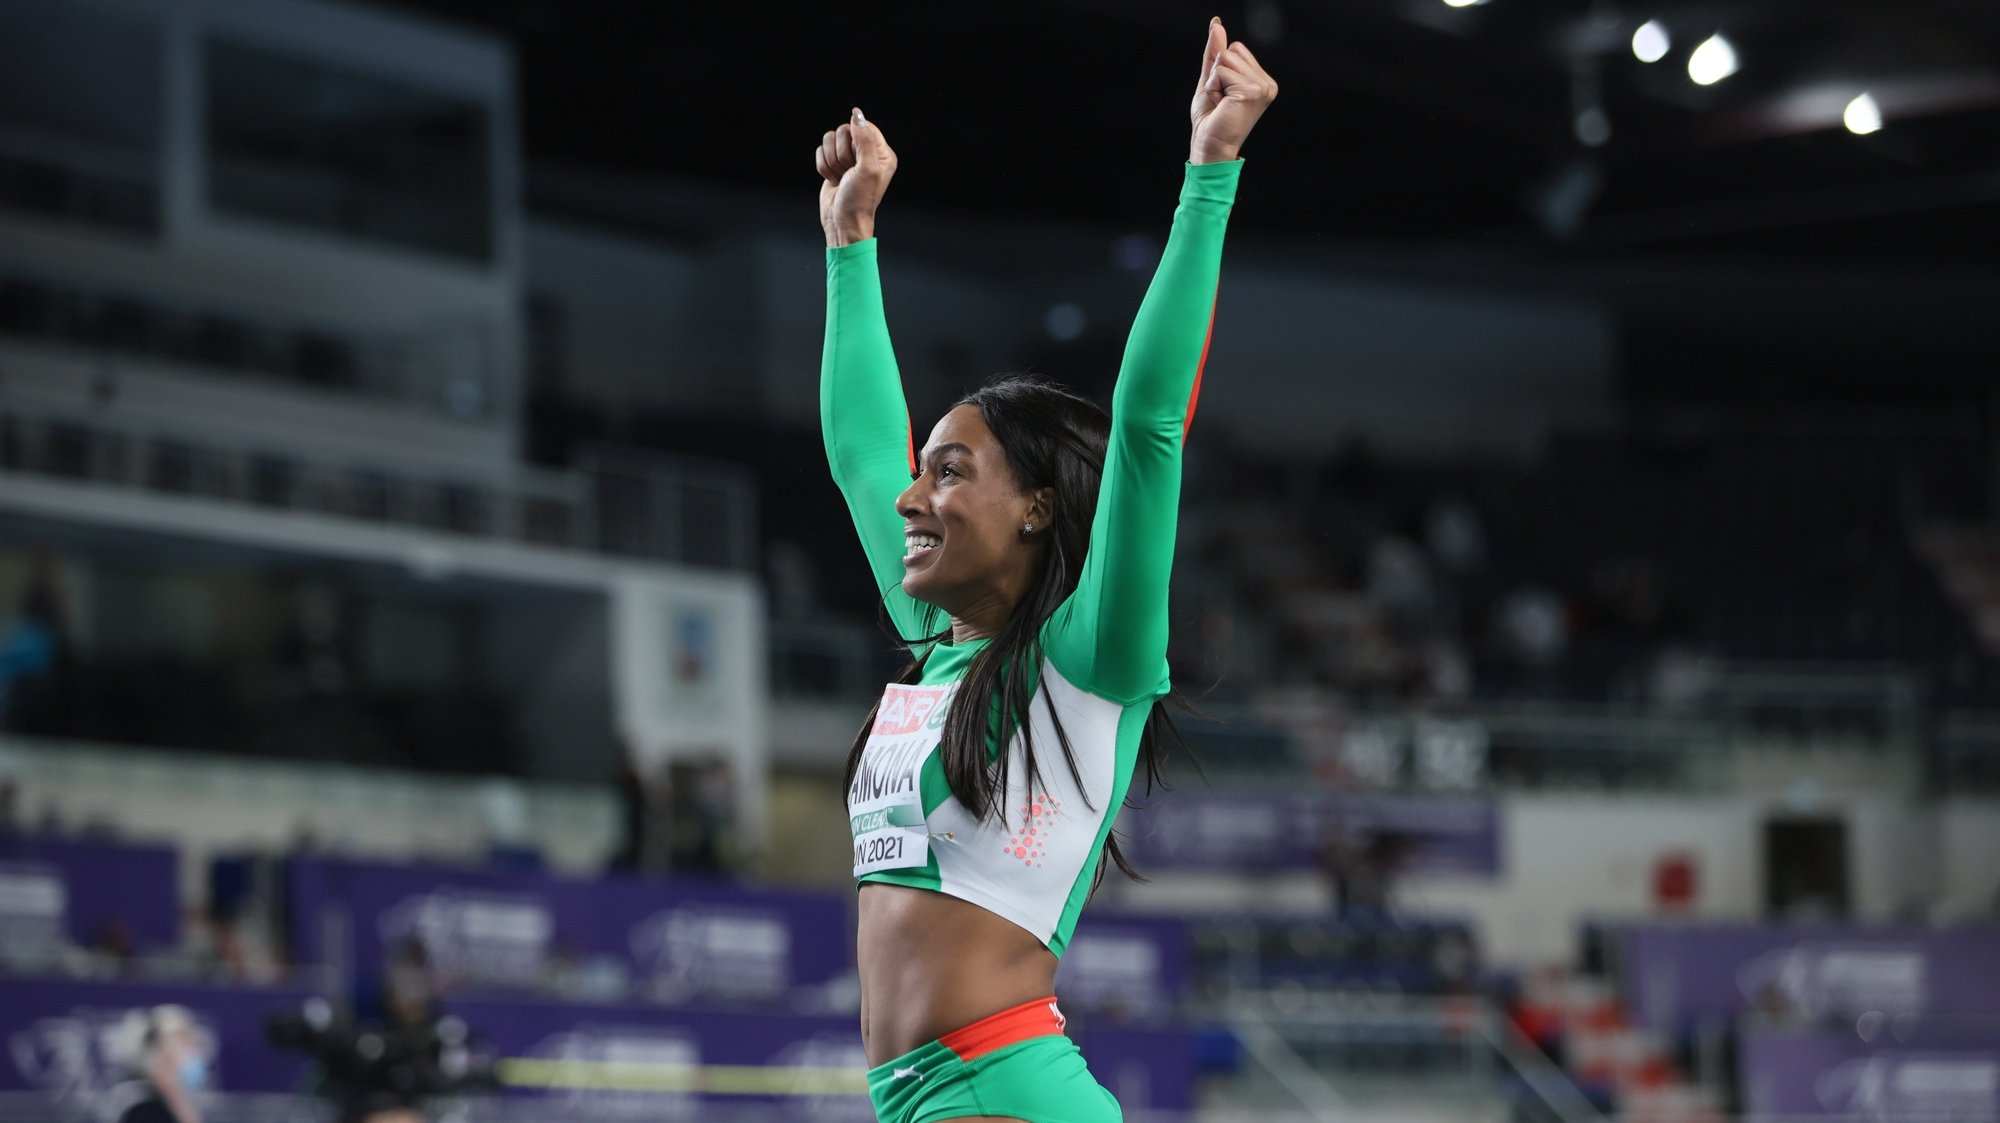 epa09060352 Patricia Mamona of Portugal poses for a photo after the women's triple jump final at the 36th European Athletics Indoor Championships at the Arena Torun, in Torun, north-central Poland, 07 March 2021.  EPA/Leszek Szymanski POLAND OUT